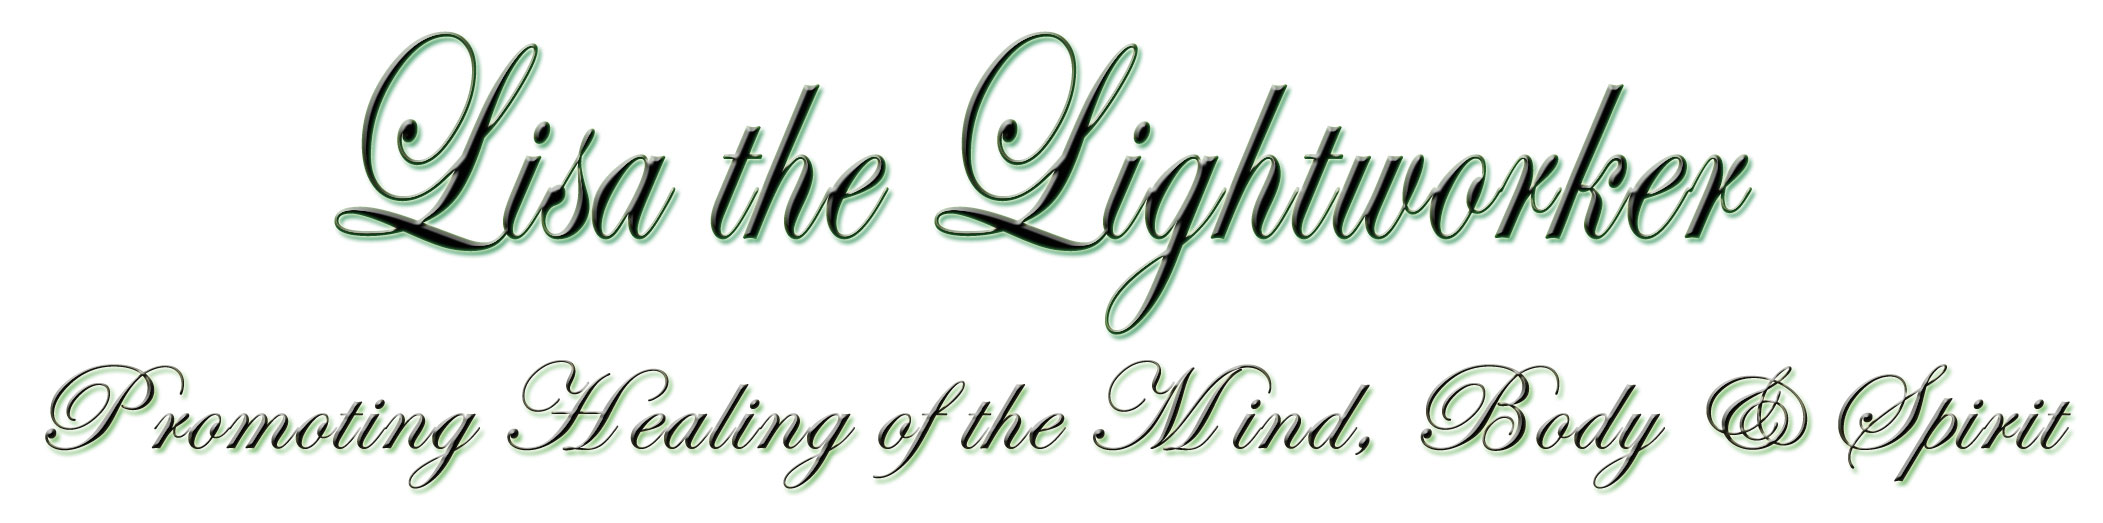 ** Lisa the Lightworker: Promoting Healing of the Body, Mind & Spirit **